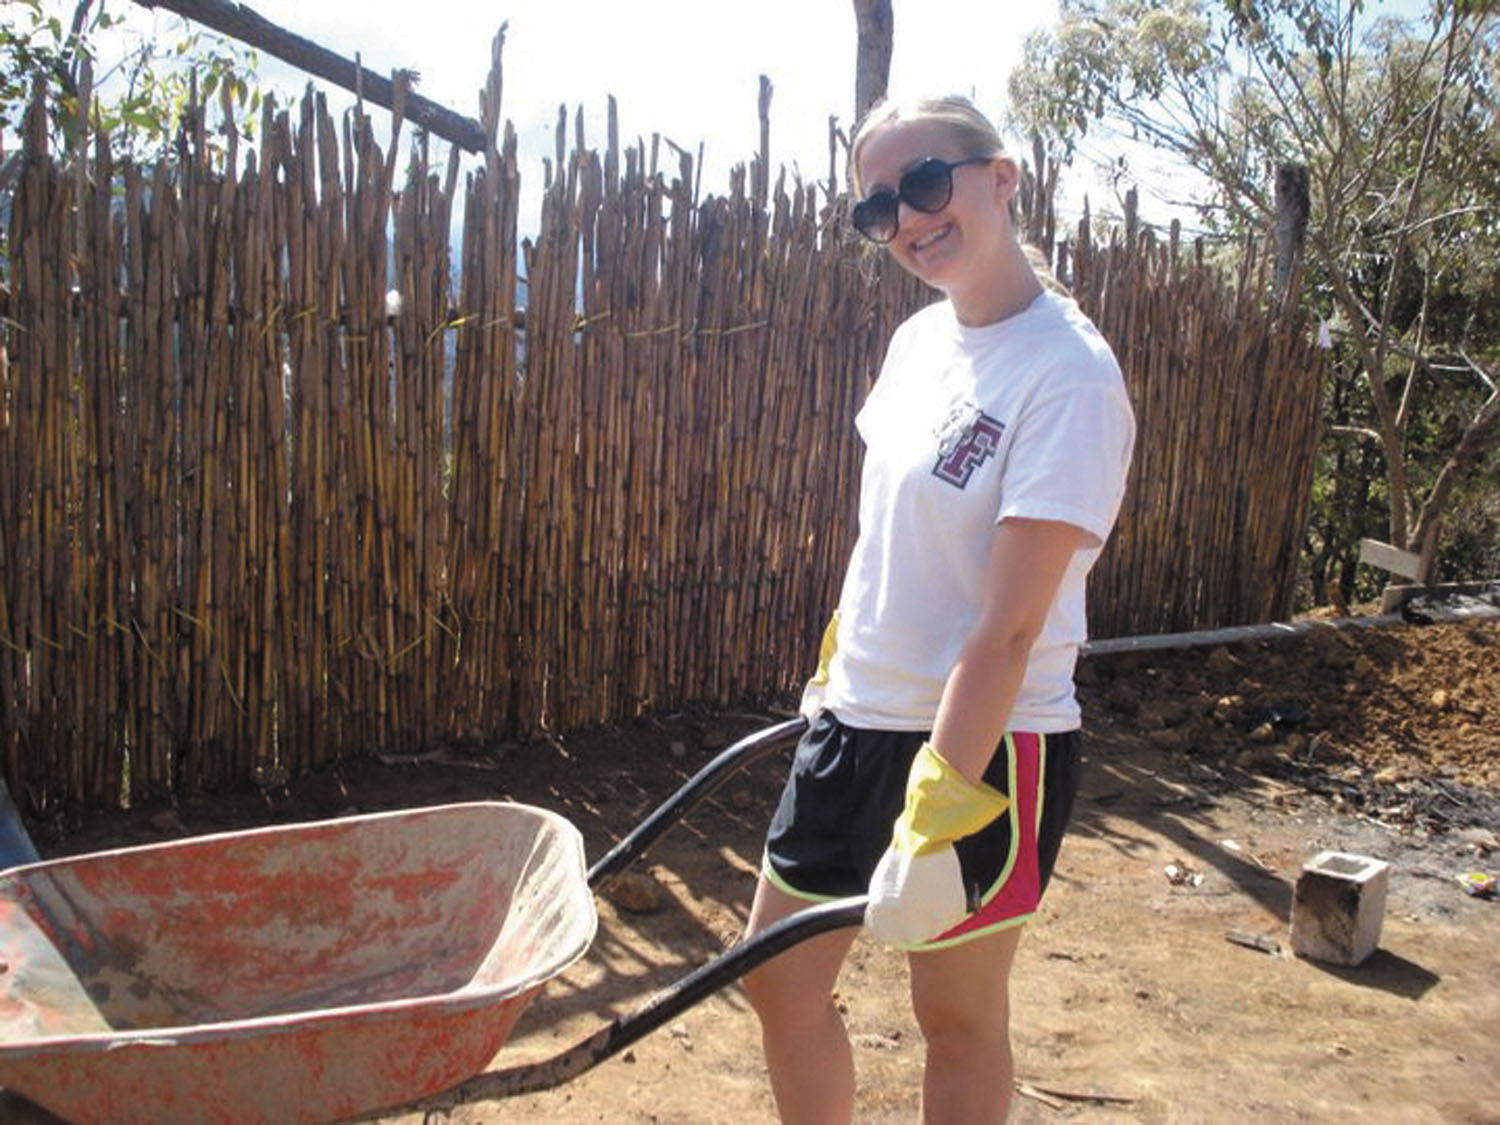 North Central native Catherine Landry grabs a wheelbarrow to help move mixed concrete inside a building to lay a floor down for a rural school during a service trip in Chipocolaj, Guatemala. She traveled there with a group from Fordham University in 2011 (photo courtesy of Cathy Landry).